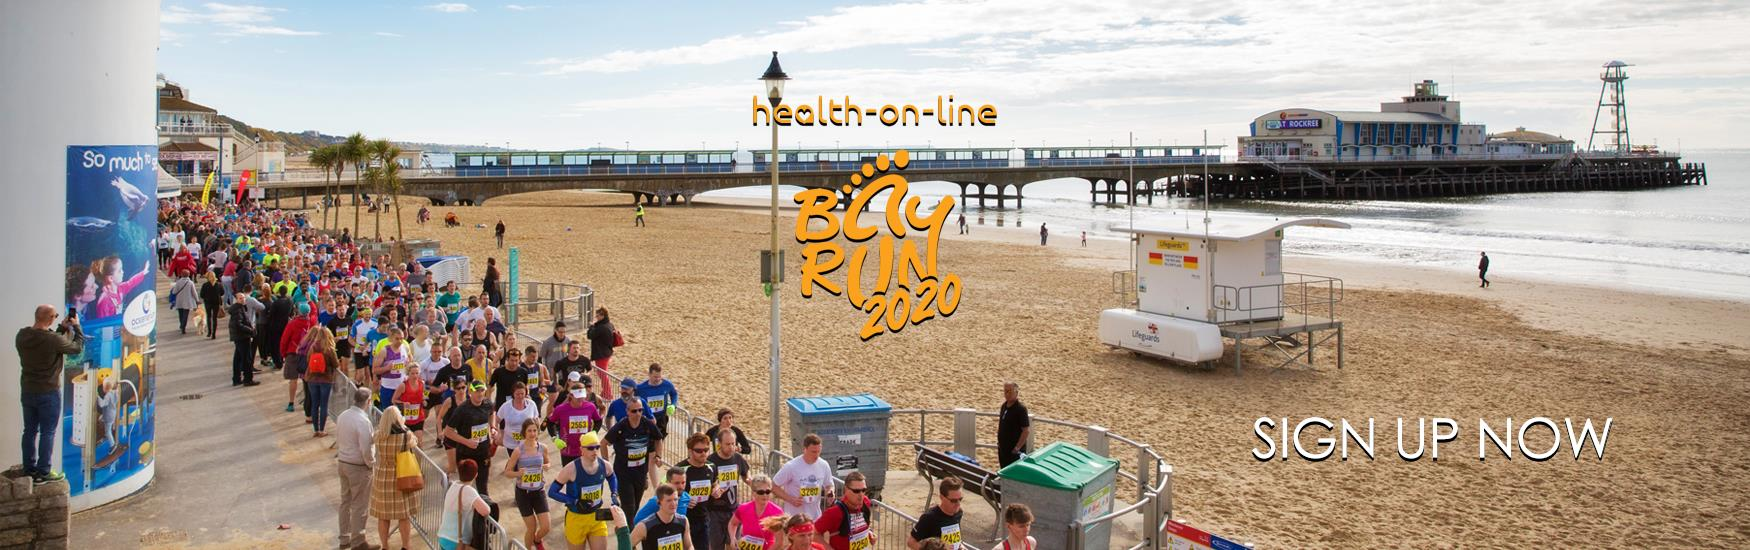 Sign up for the Bournemouth Bay Run